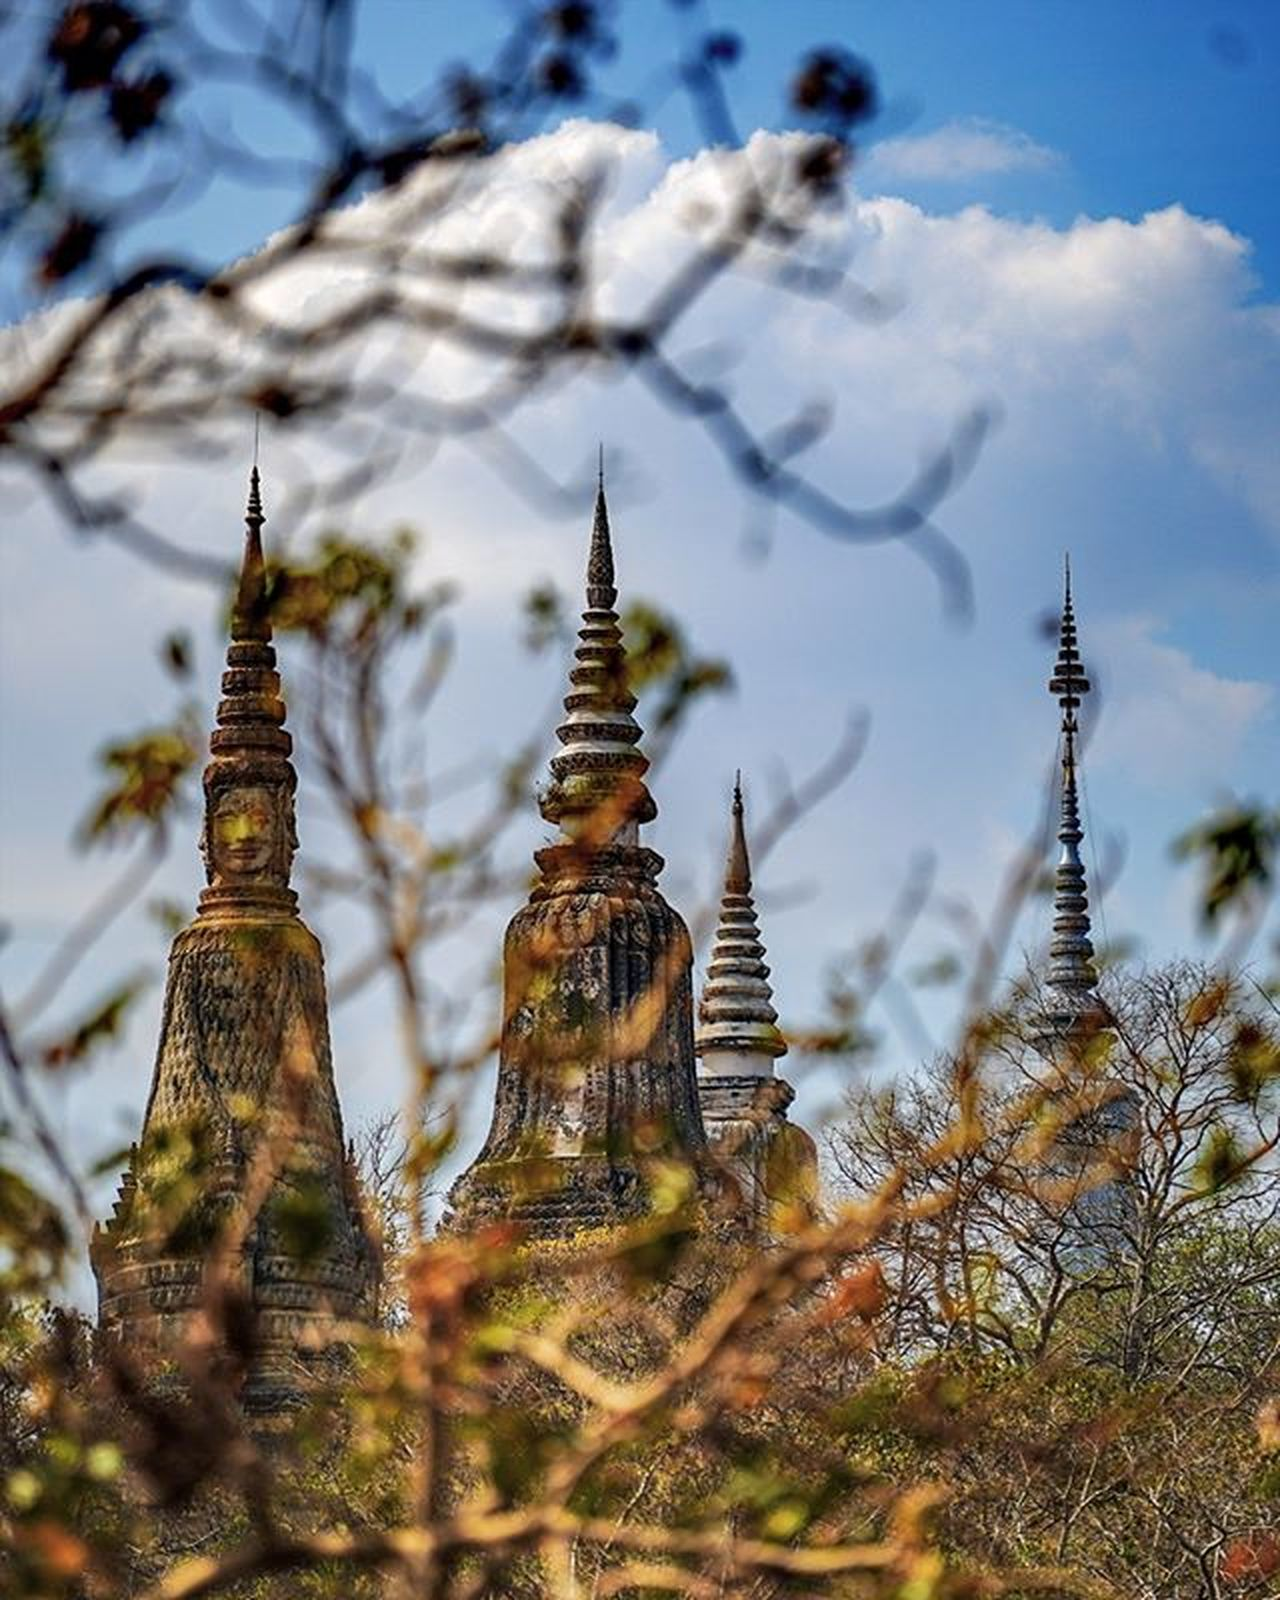 The 4 pinnacles' at the peak. Sony a7 experience @ Wat Oudong. Sony A7s Sonyalpha Sonyimages SonyA7s Sonycamera Sonyphotography Theappwhisperer Adventurevisuals GoodRadShot Fhotoroom PicHitMe EyeEm EyeEm_O MenchFeature Photography Pixelpanda Visitorg Aop_Lab Yourworldgallery SeeOurWorldNow Runningtheworld Natgeo Natgeotravel Natgeoyourshot Cambodia PhnomPenh @fhotoroom_ @pichitme @goodradshot @street_hunters @pixel_panda_ @eyeem_o @photocrowd @photoadvices @worldphotoorg